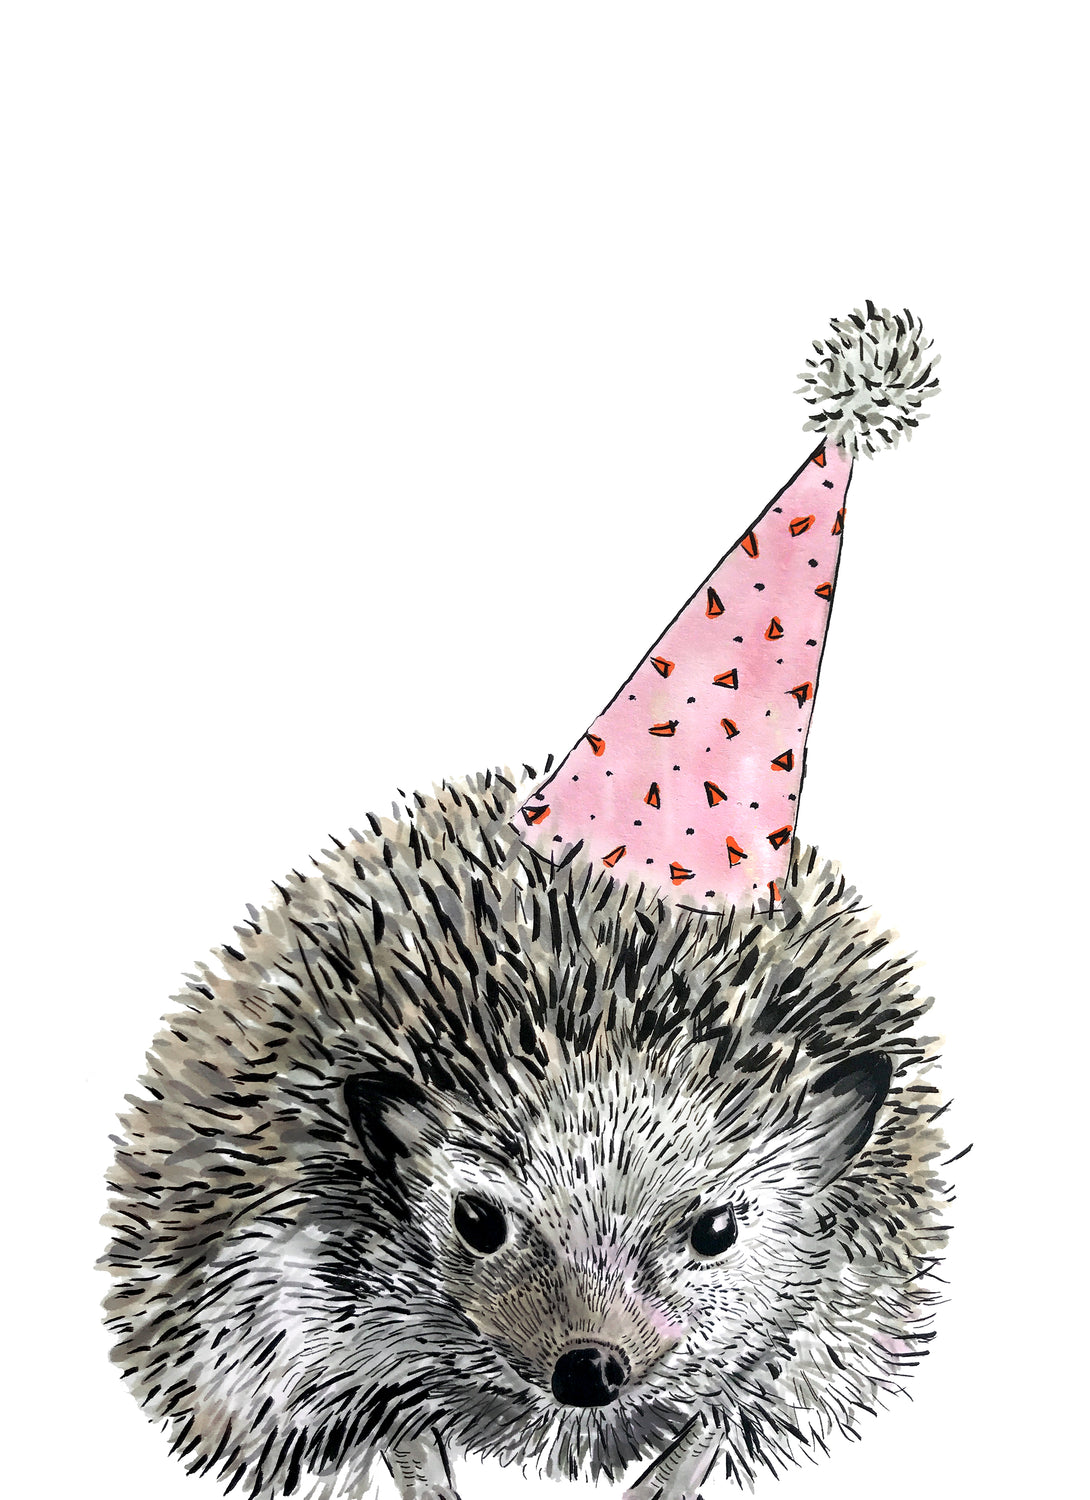 Party Hedgehog Giclée Print